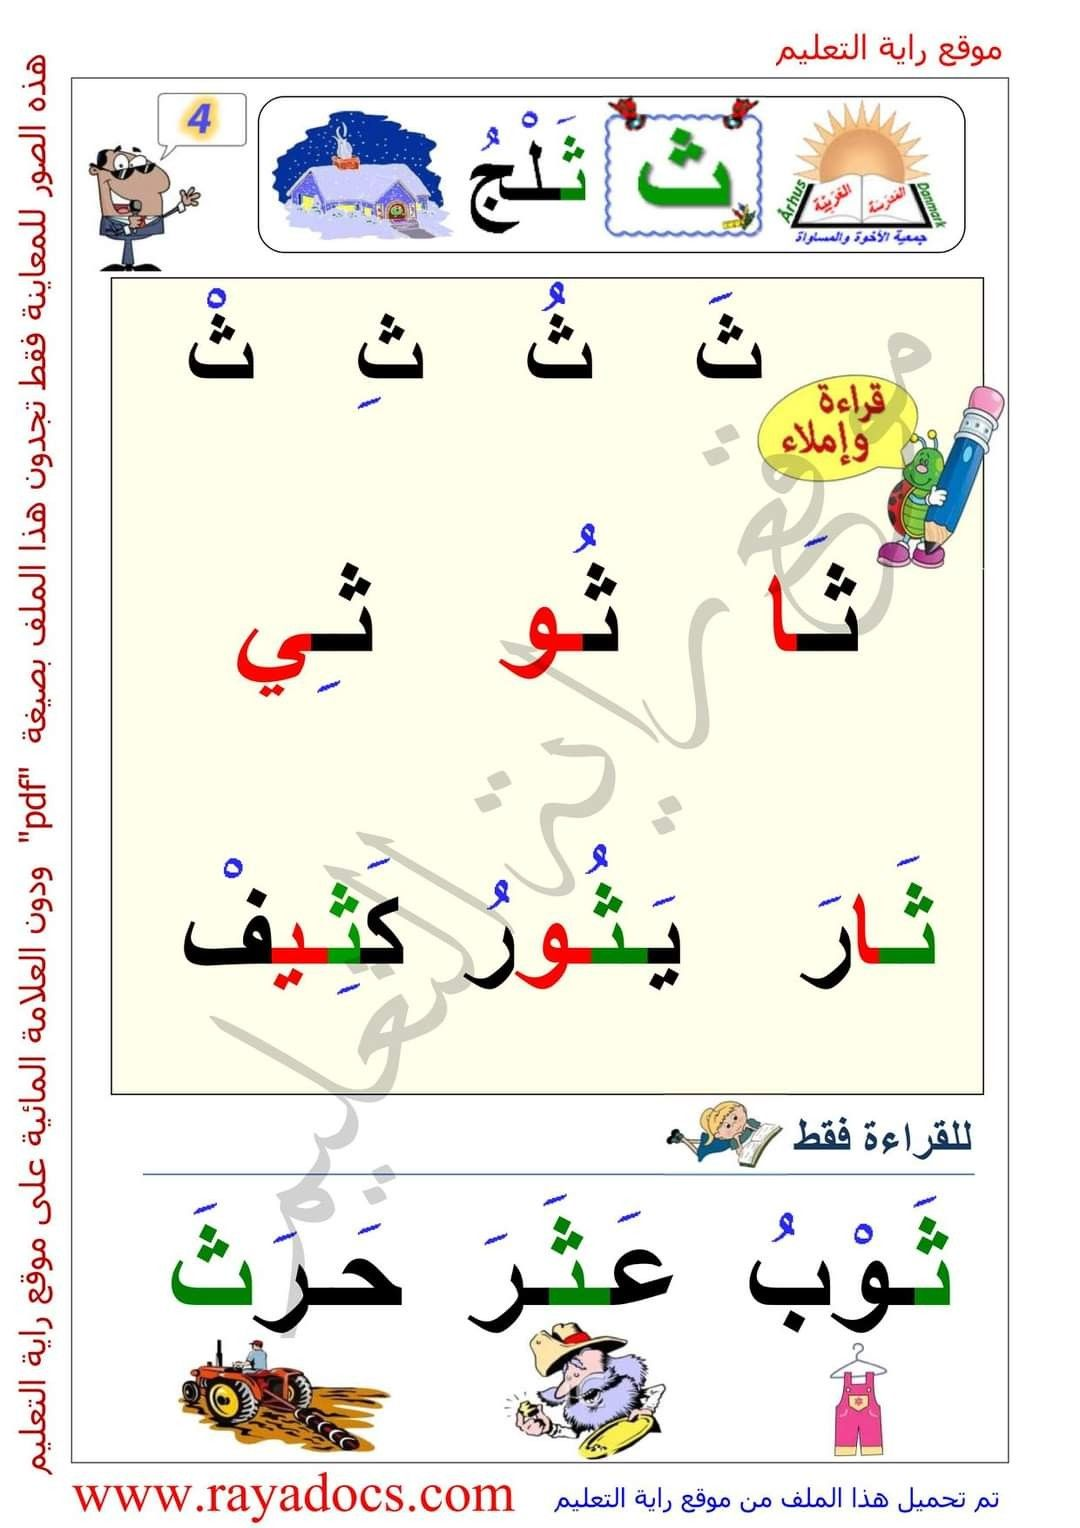 Pin By Torin Torin On 777 In 2021 Learning Arabic Precious Children Phonics